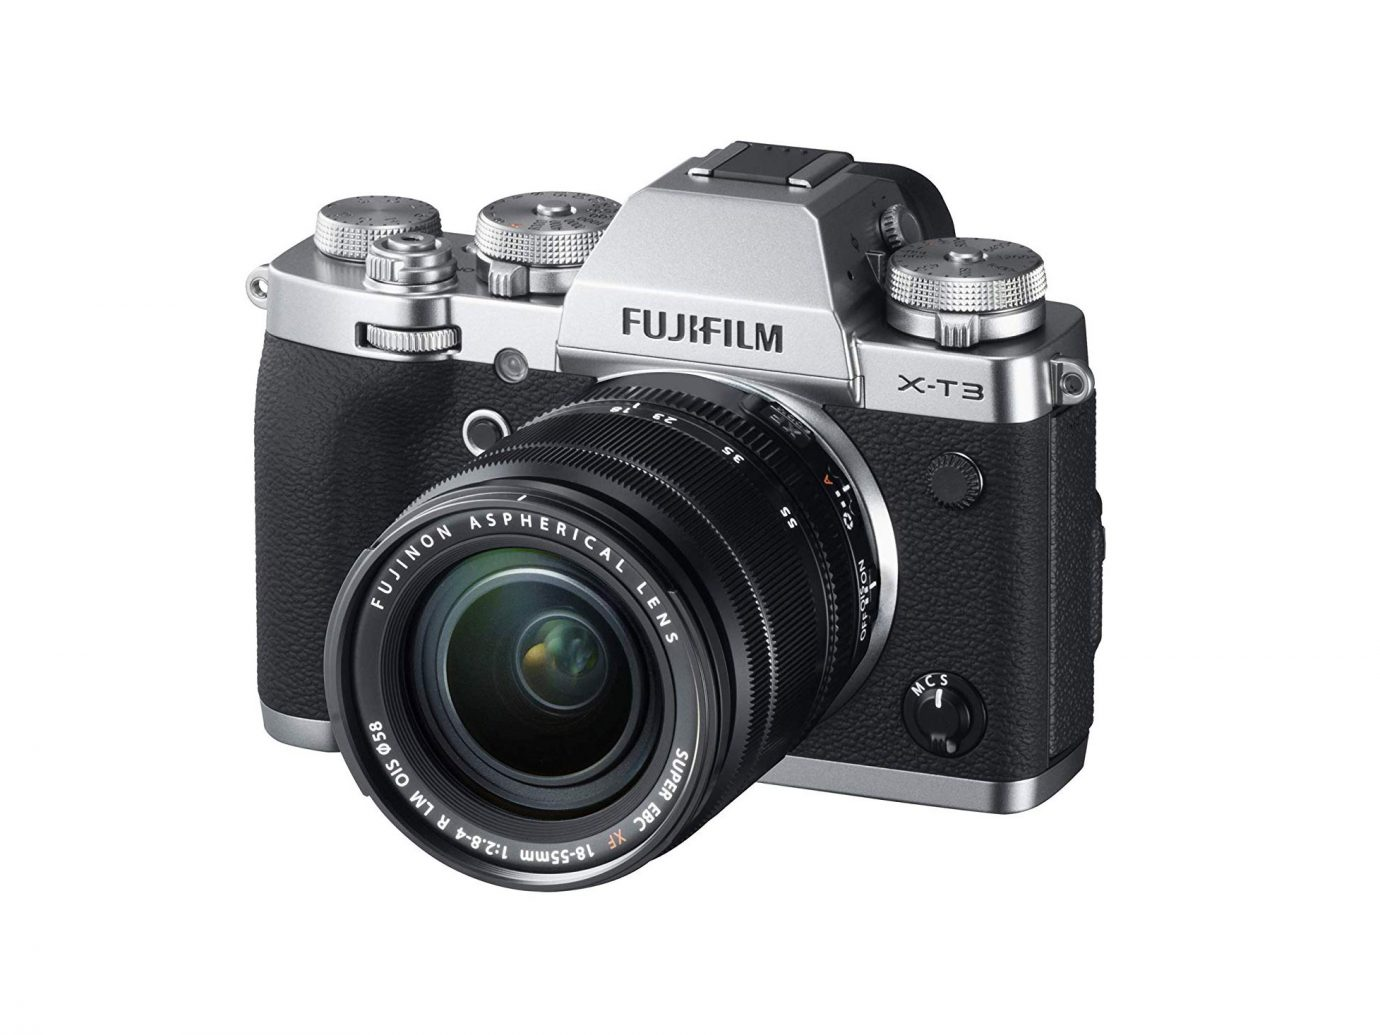 Fujifilm X-T3 Mirrorless Digital Camera on Amazon